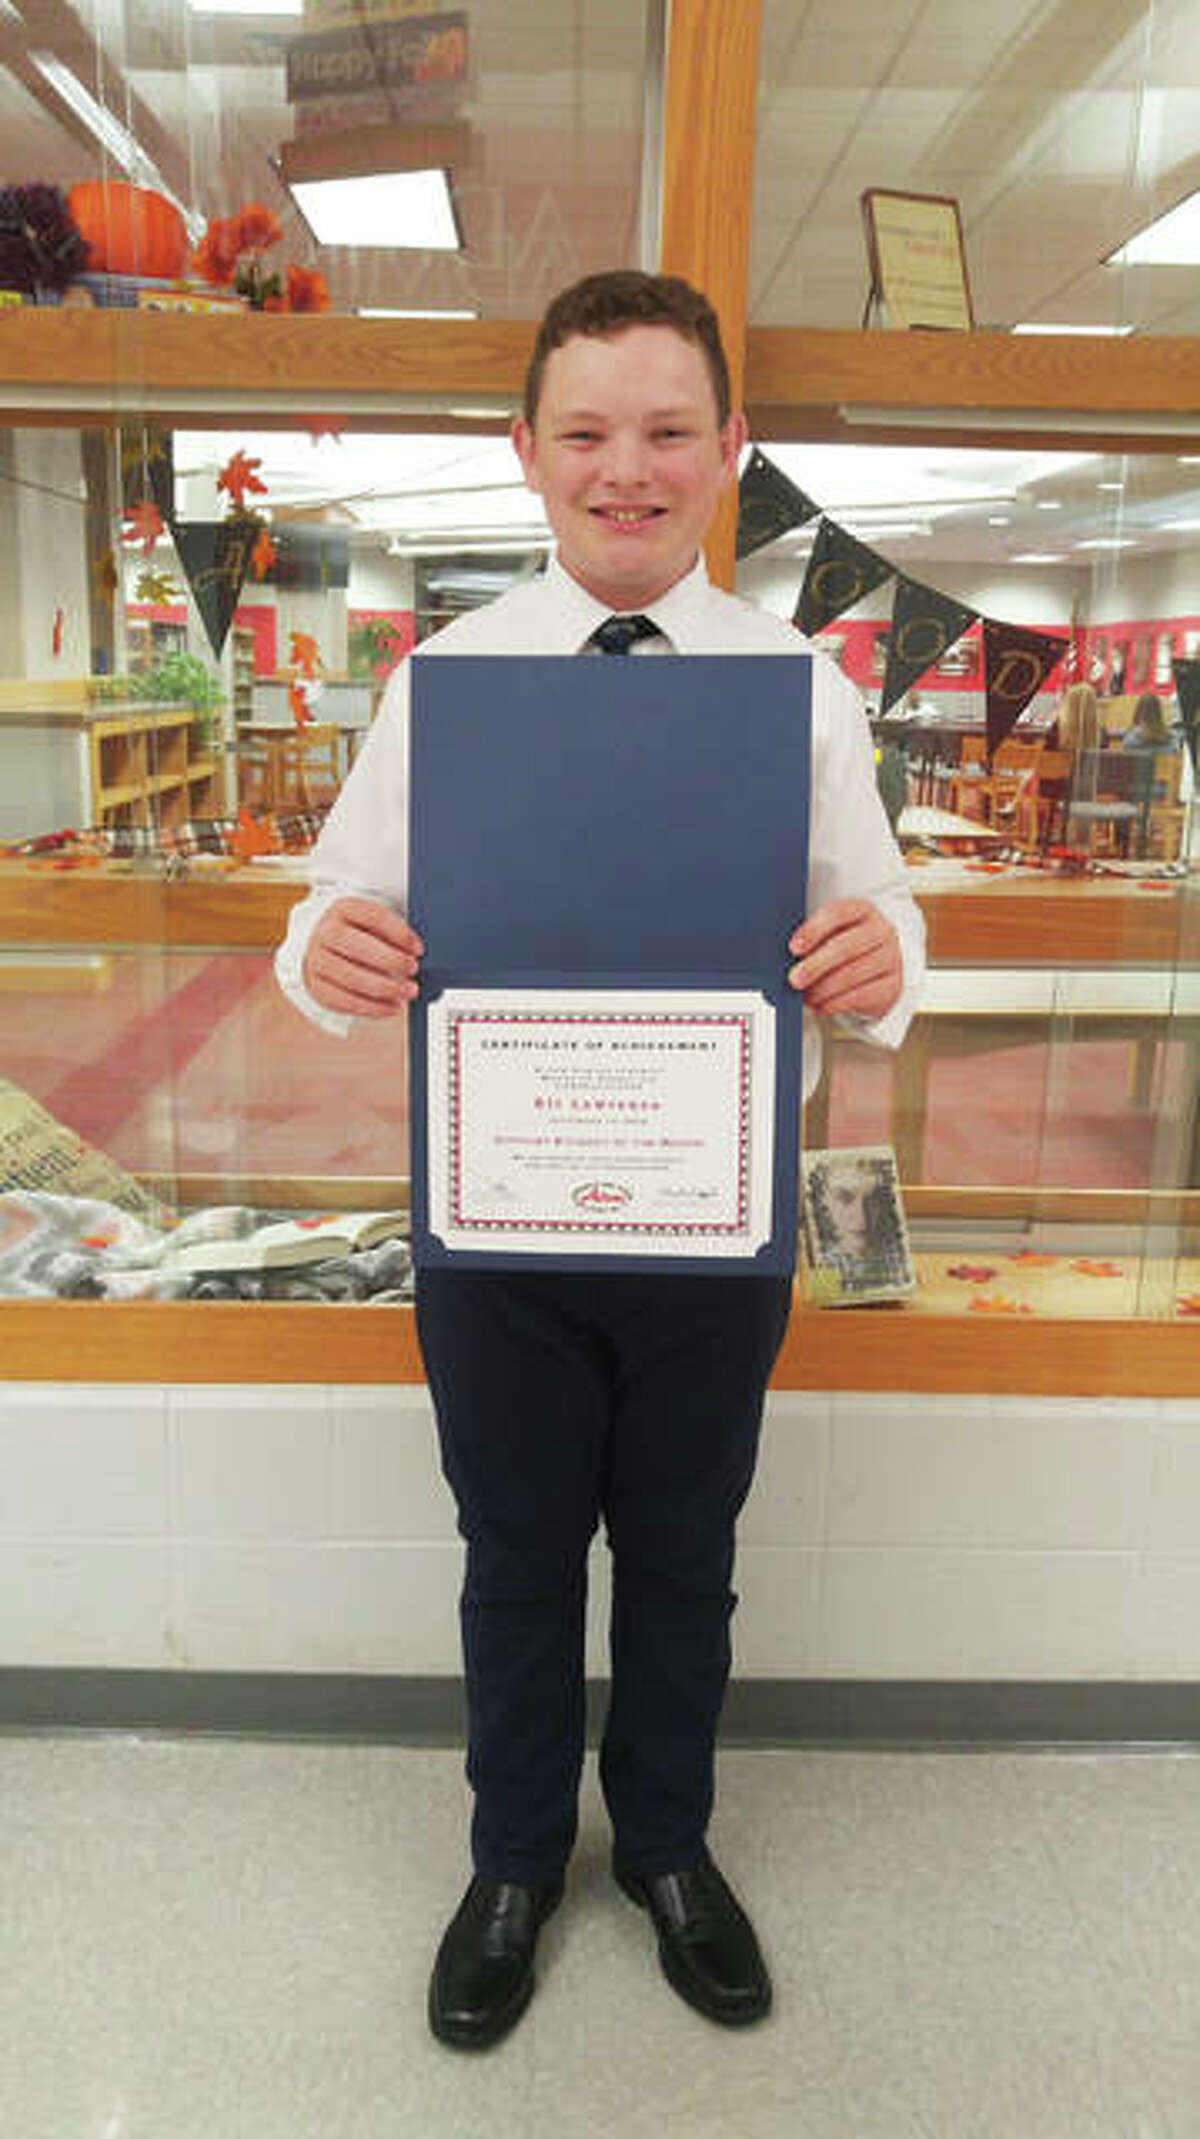 Eli Lawrence holding his award for Alton Middle School's Optimist Student of the Month for September. Lawrence received the recognition for his hard work and willingness to help others, as demonstrated in part by his willingness to learn sign language to communicate with a classmate.